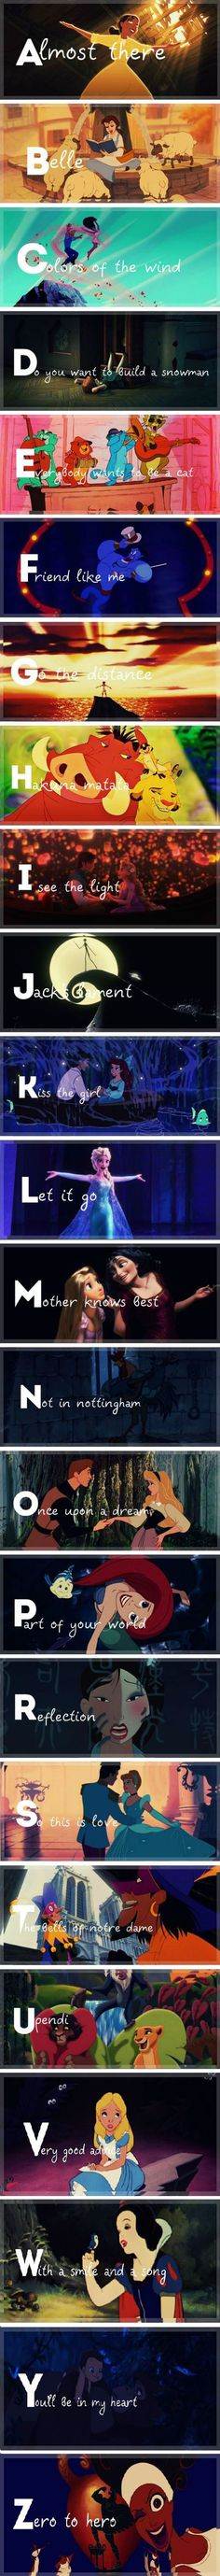 The alphabet, the Disney way.